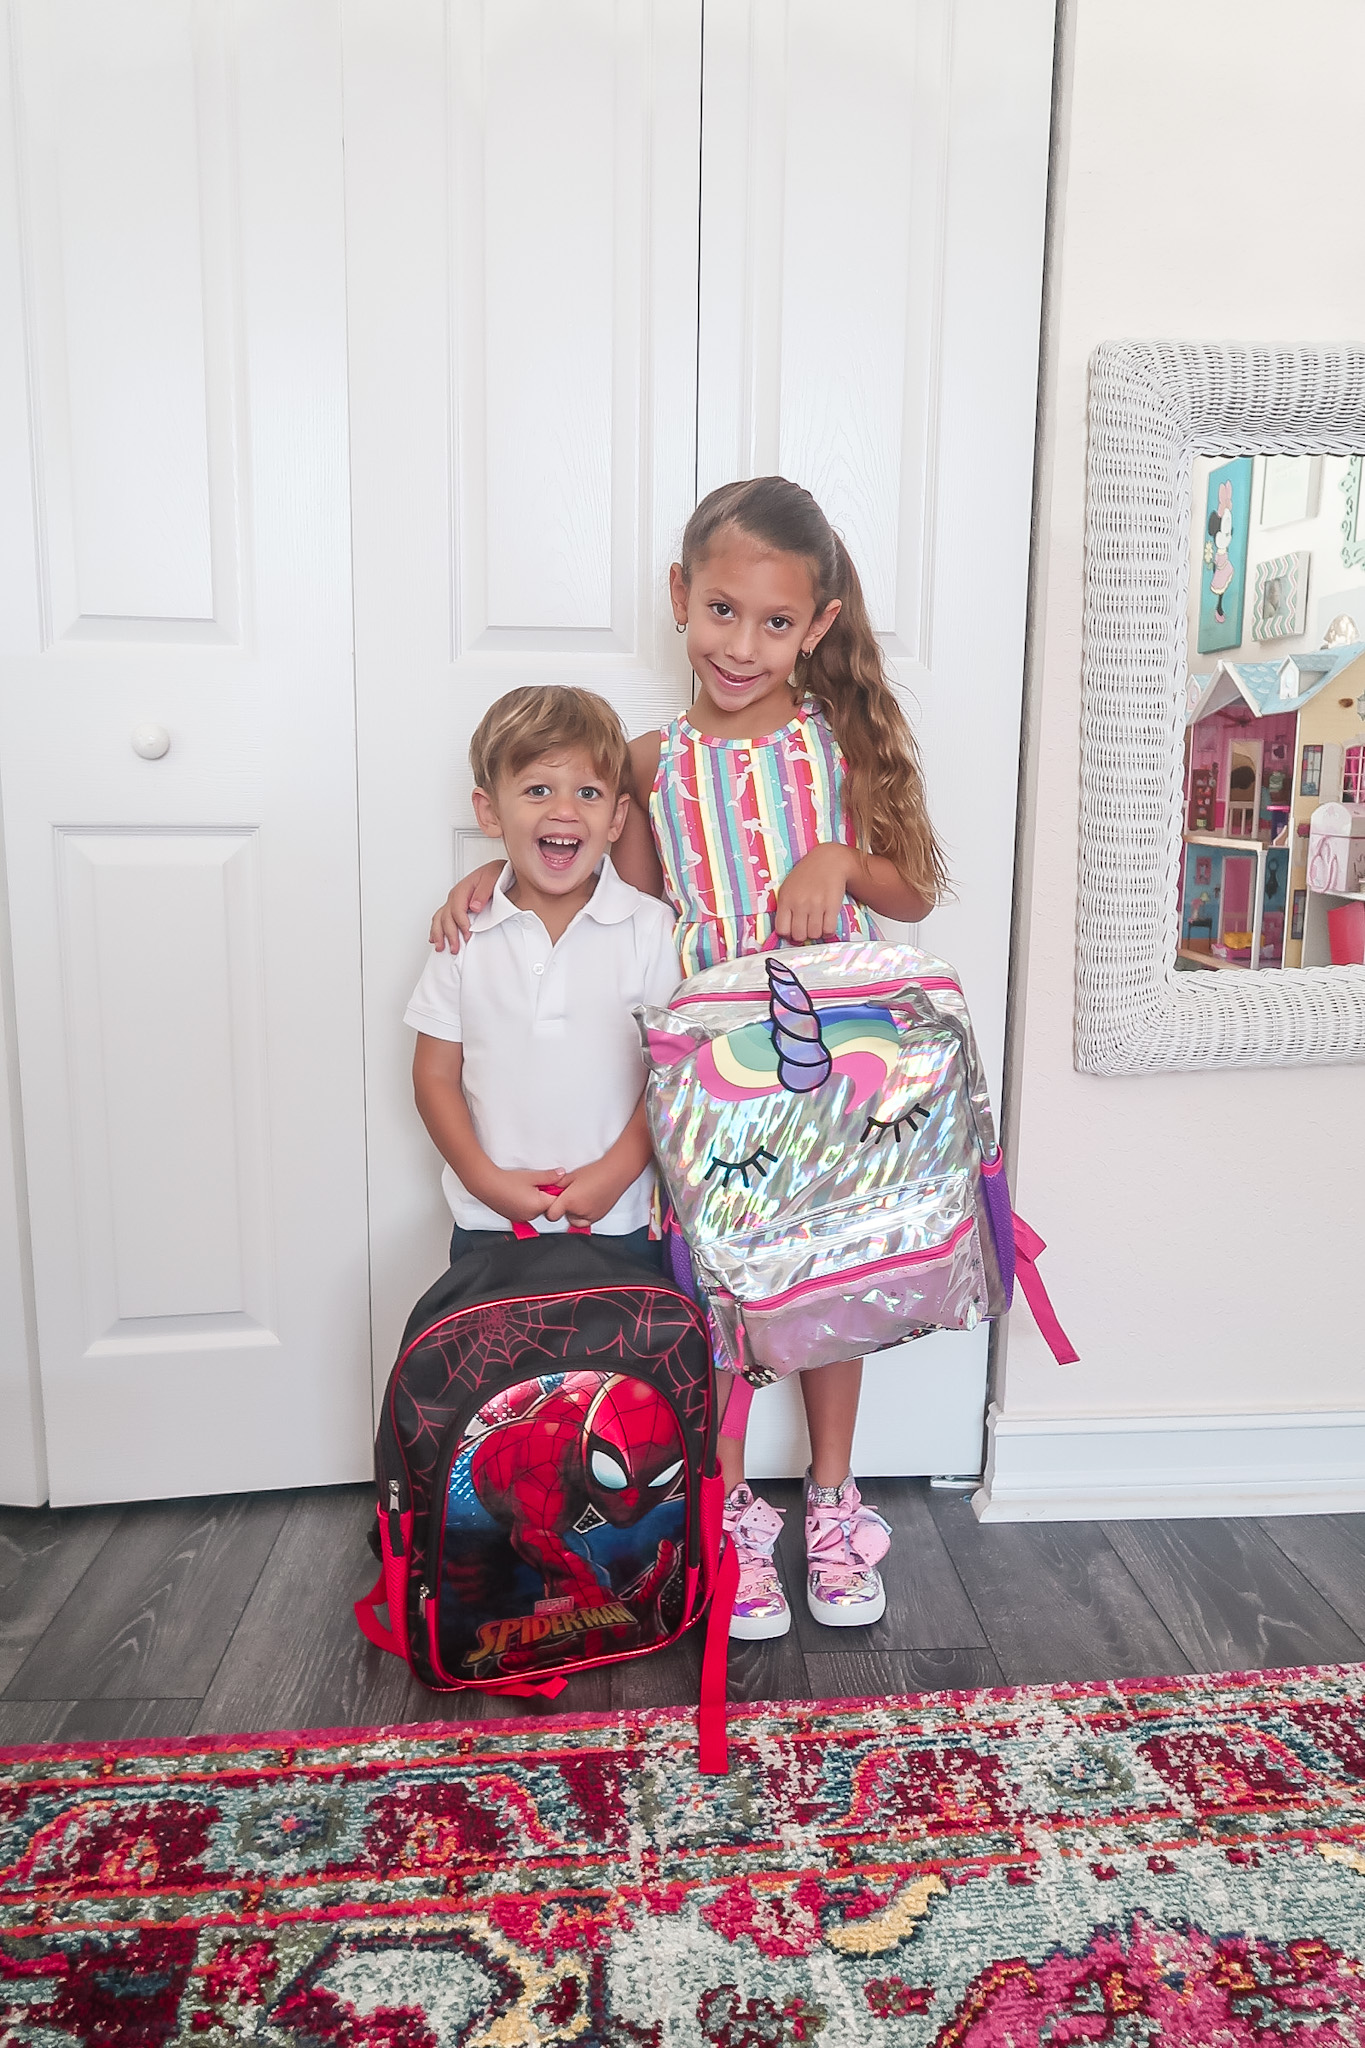 Walmart kids, unicorn backpack, Spiderman backpack, school uniform